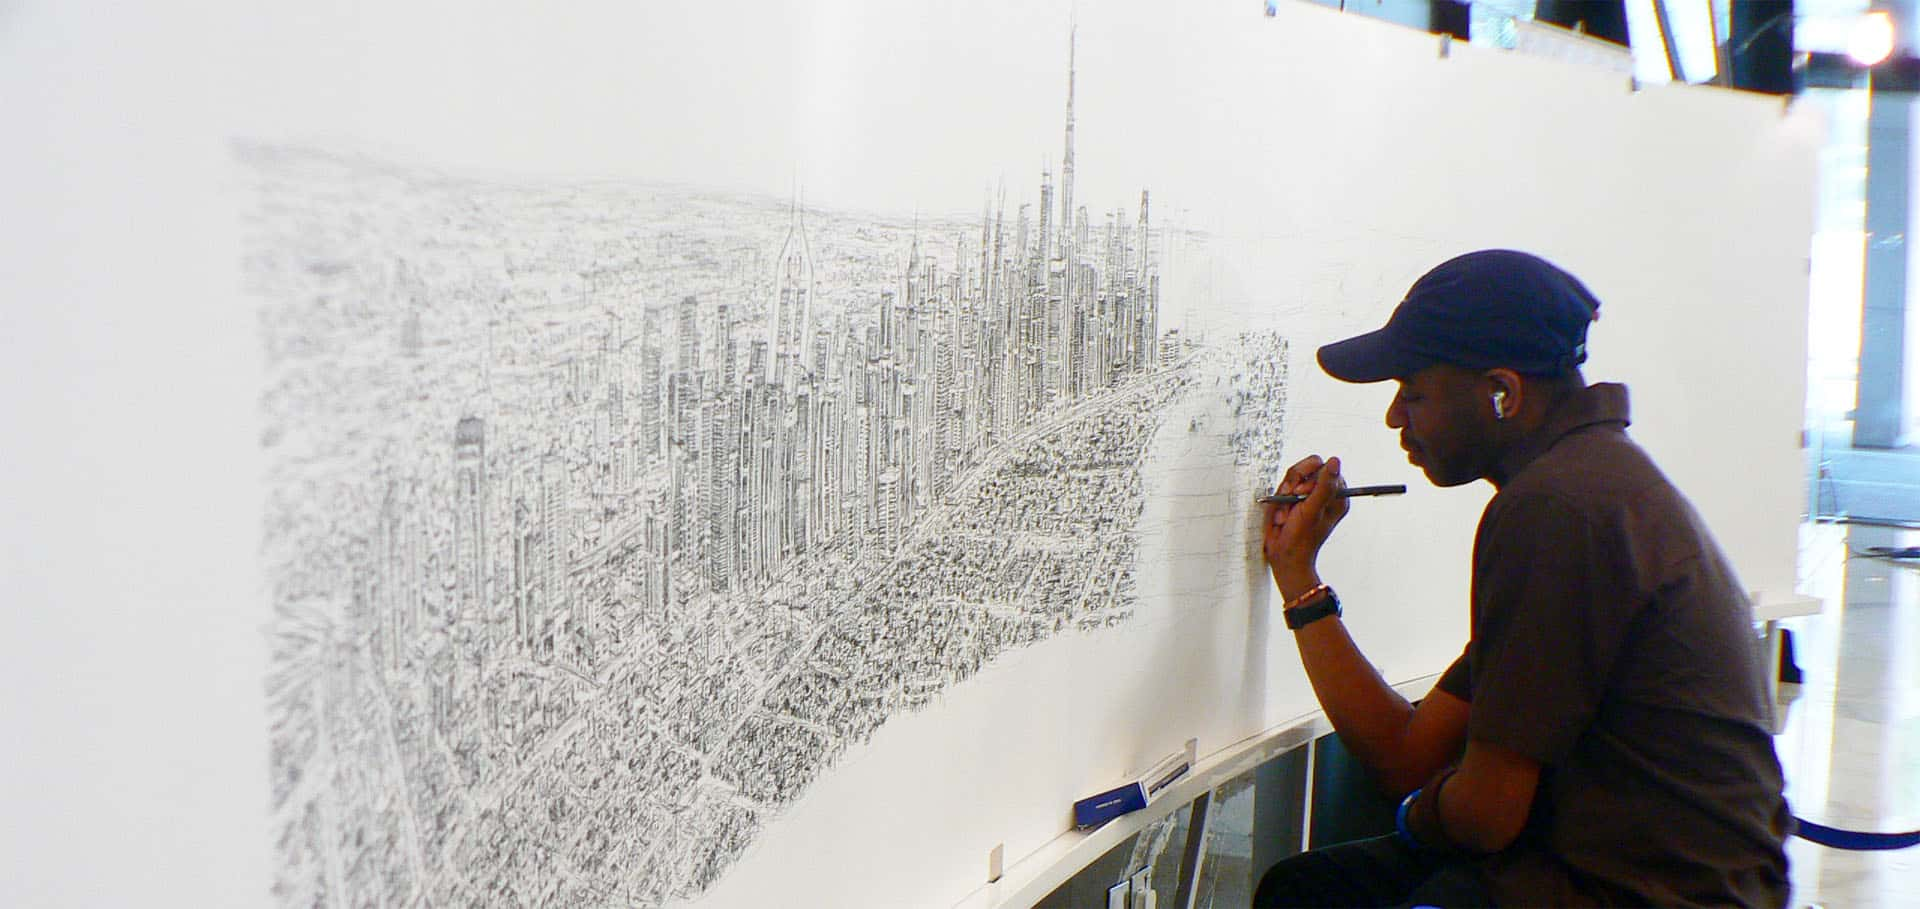 Stephen Wiltshire S Dubai Panorama Drawing